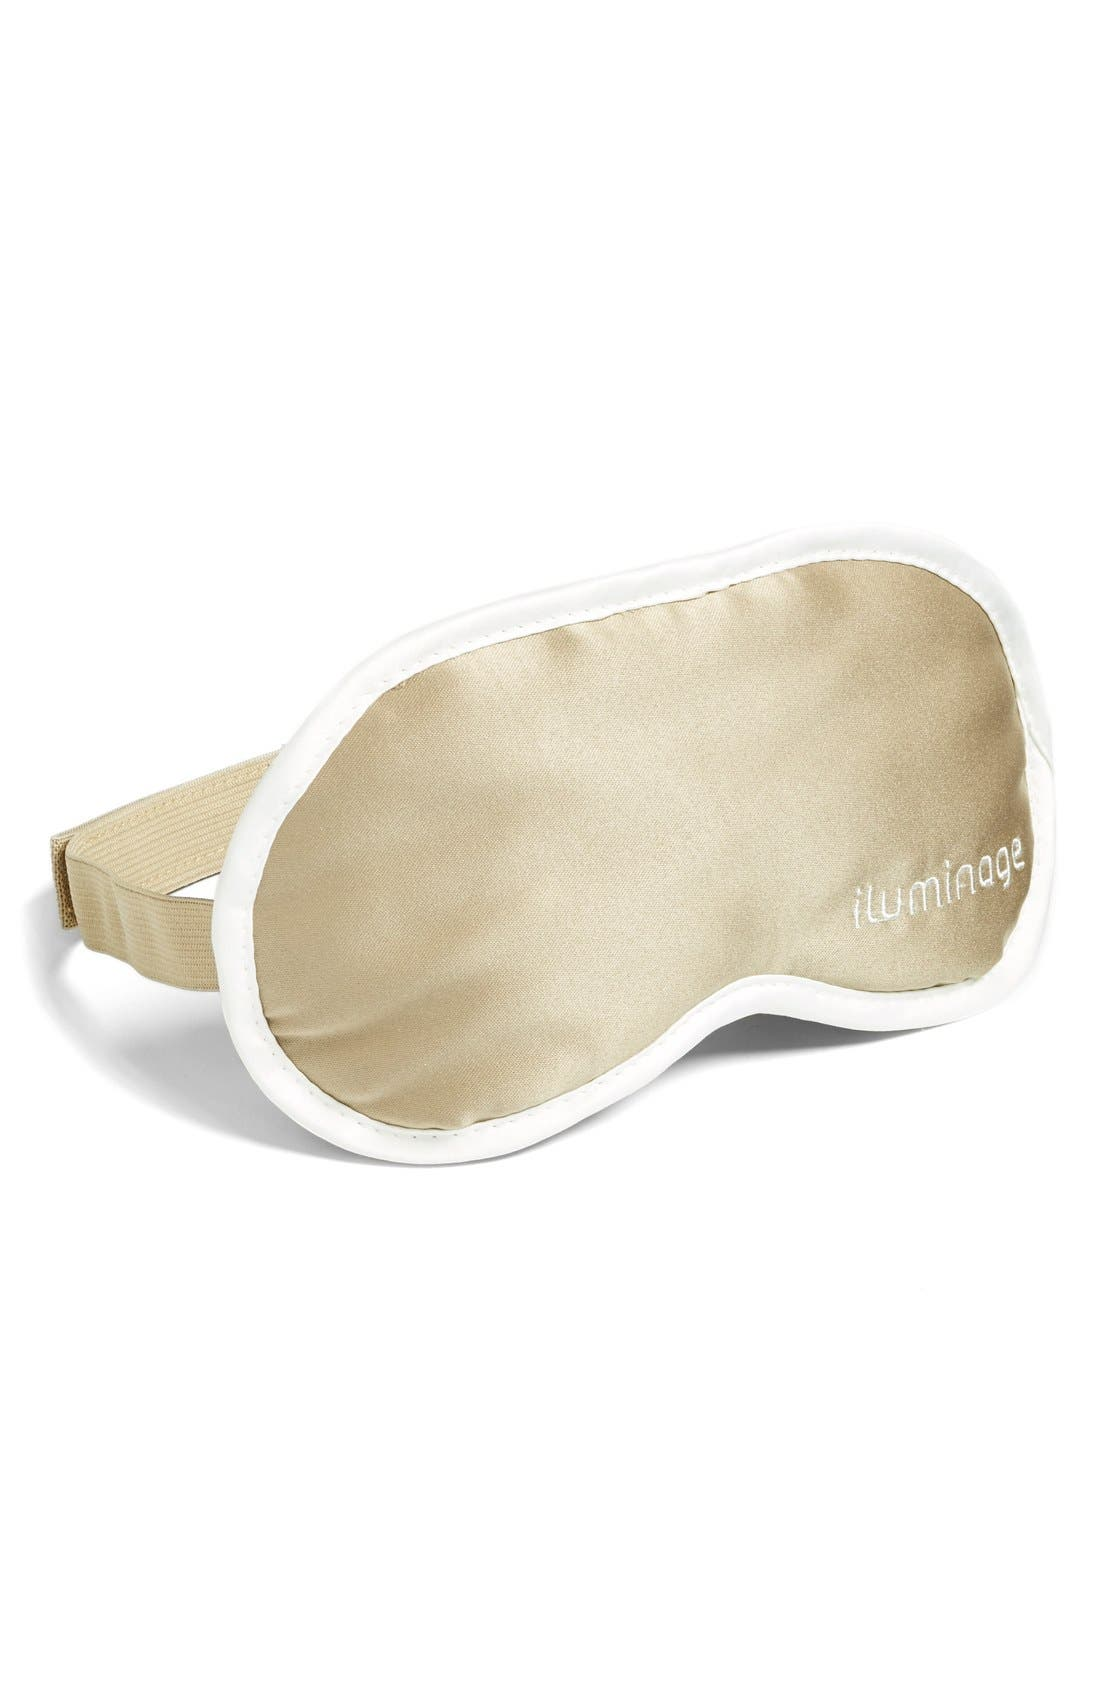 Skin Rejuvenating Eye Mask,                             Main thumbnail 1, color,                             000